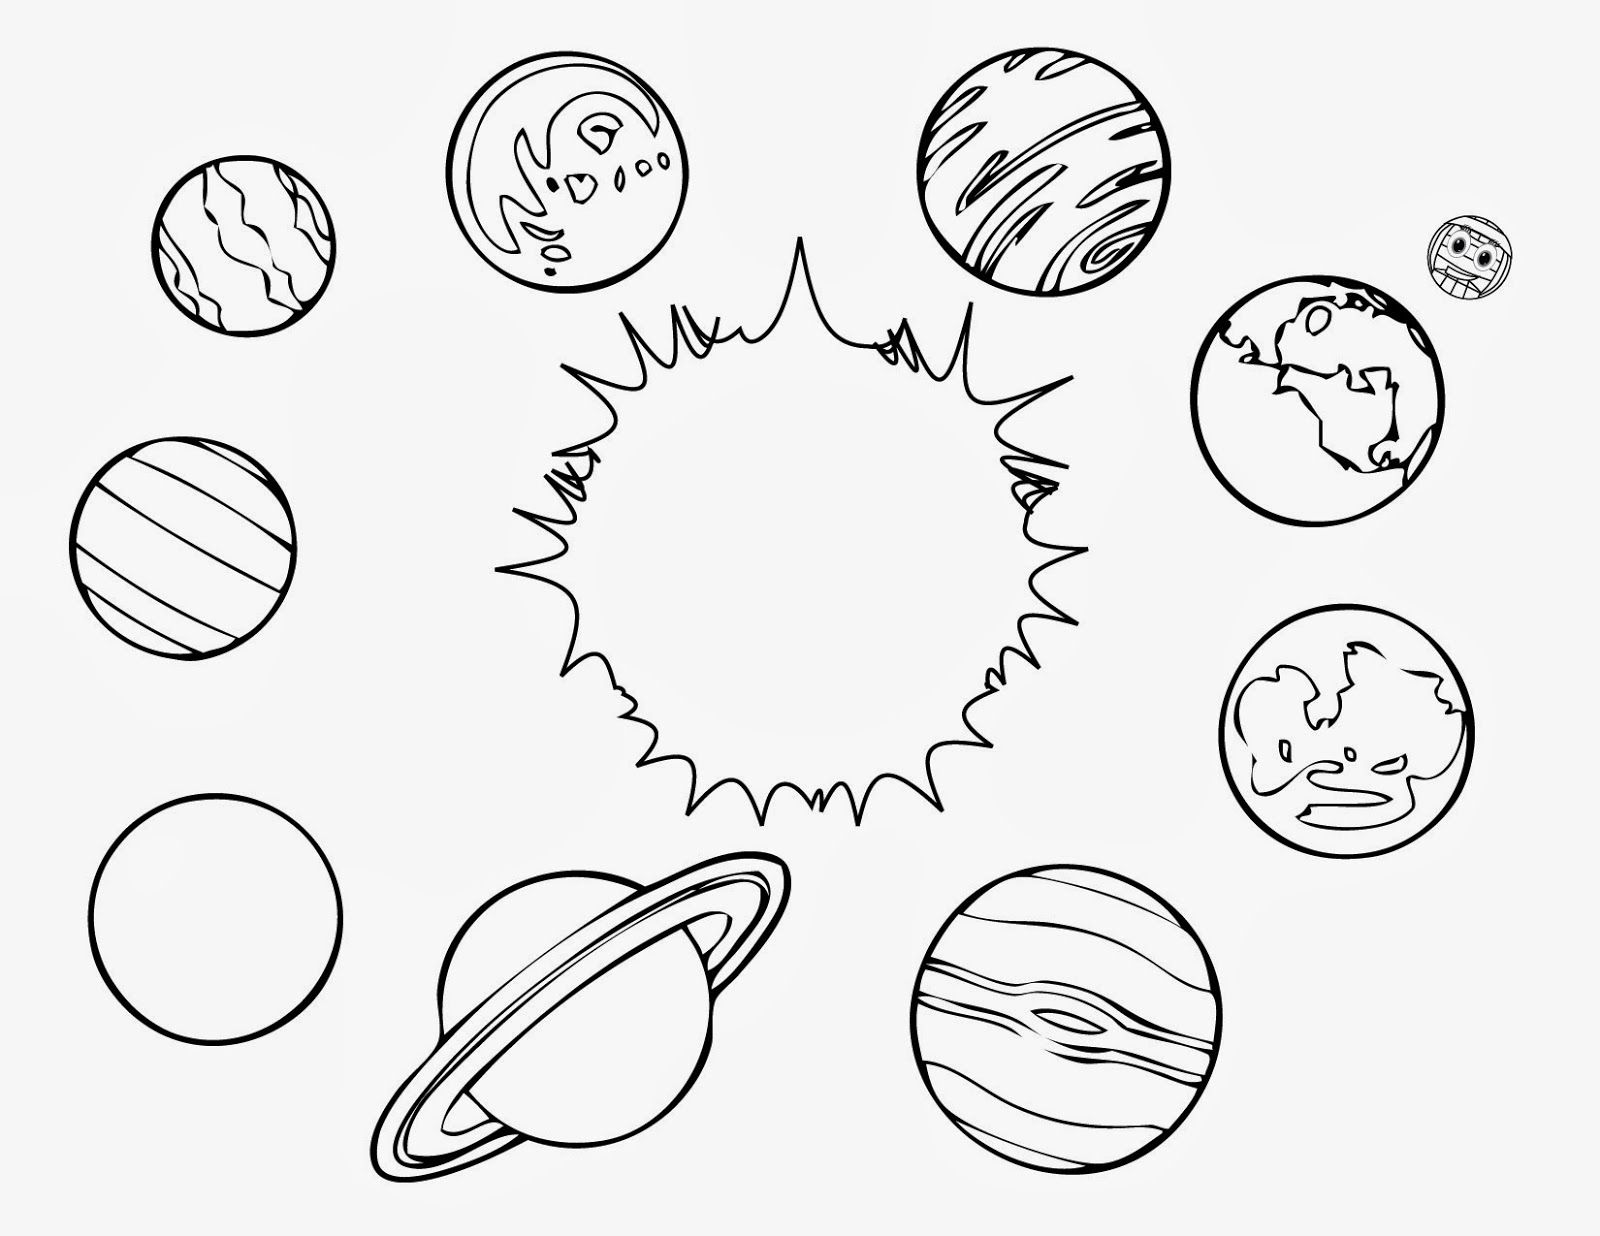 coloring solar system planets free coloring pages printable pictures to color kids coloring solar system planets